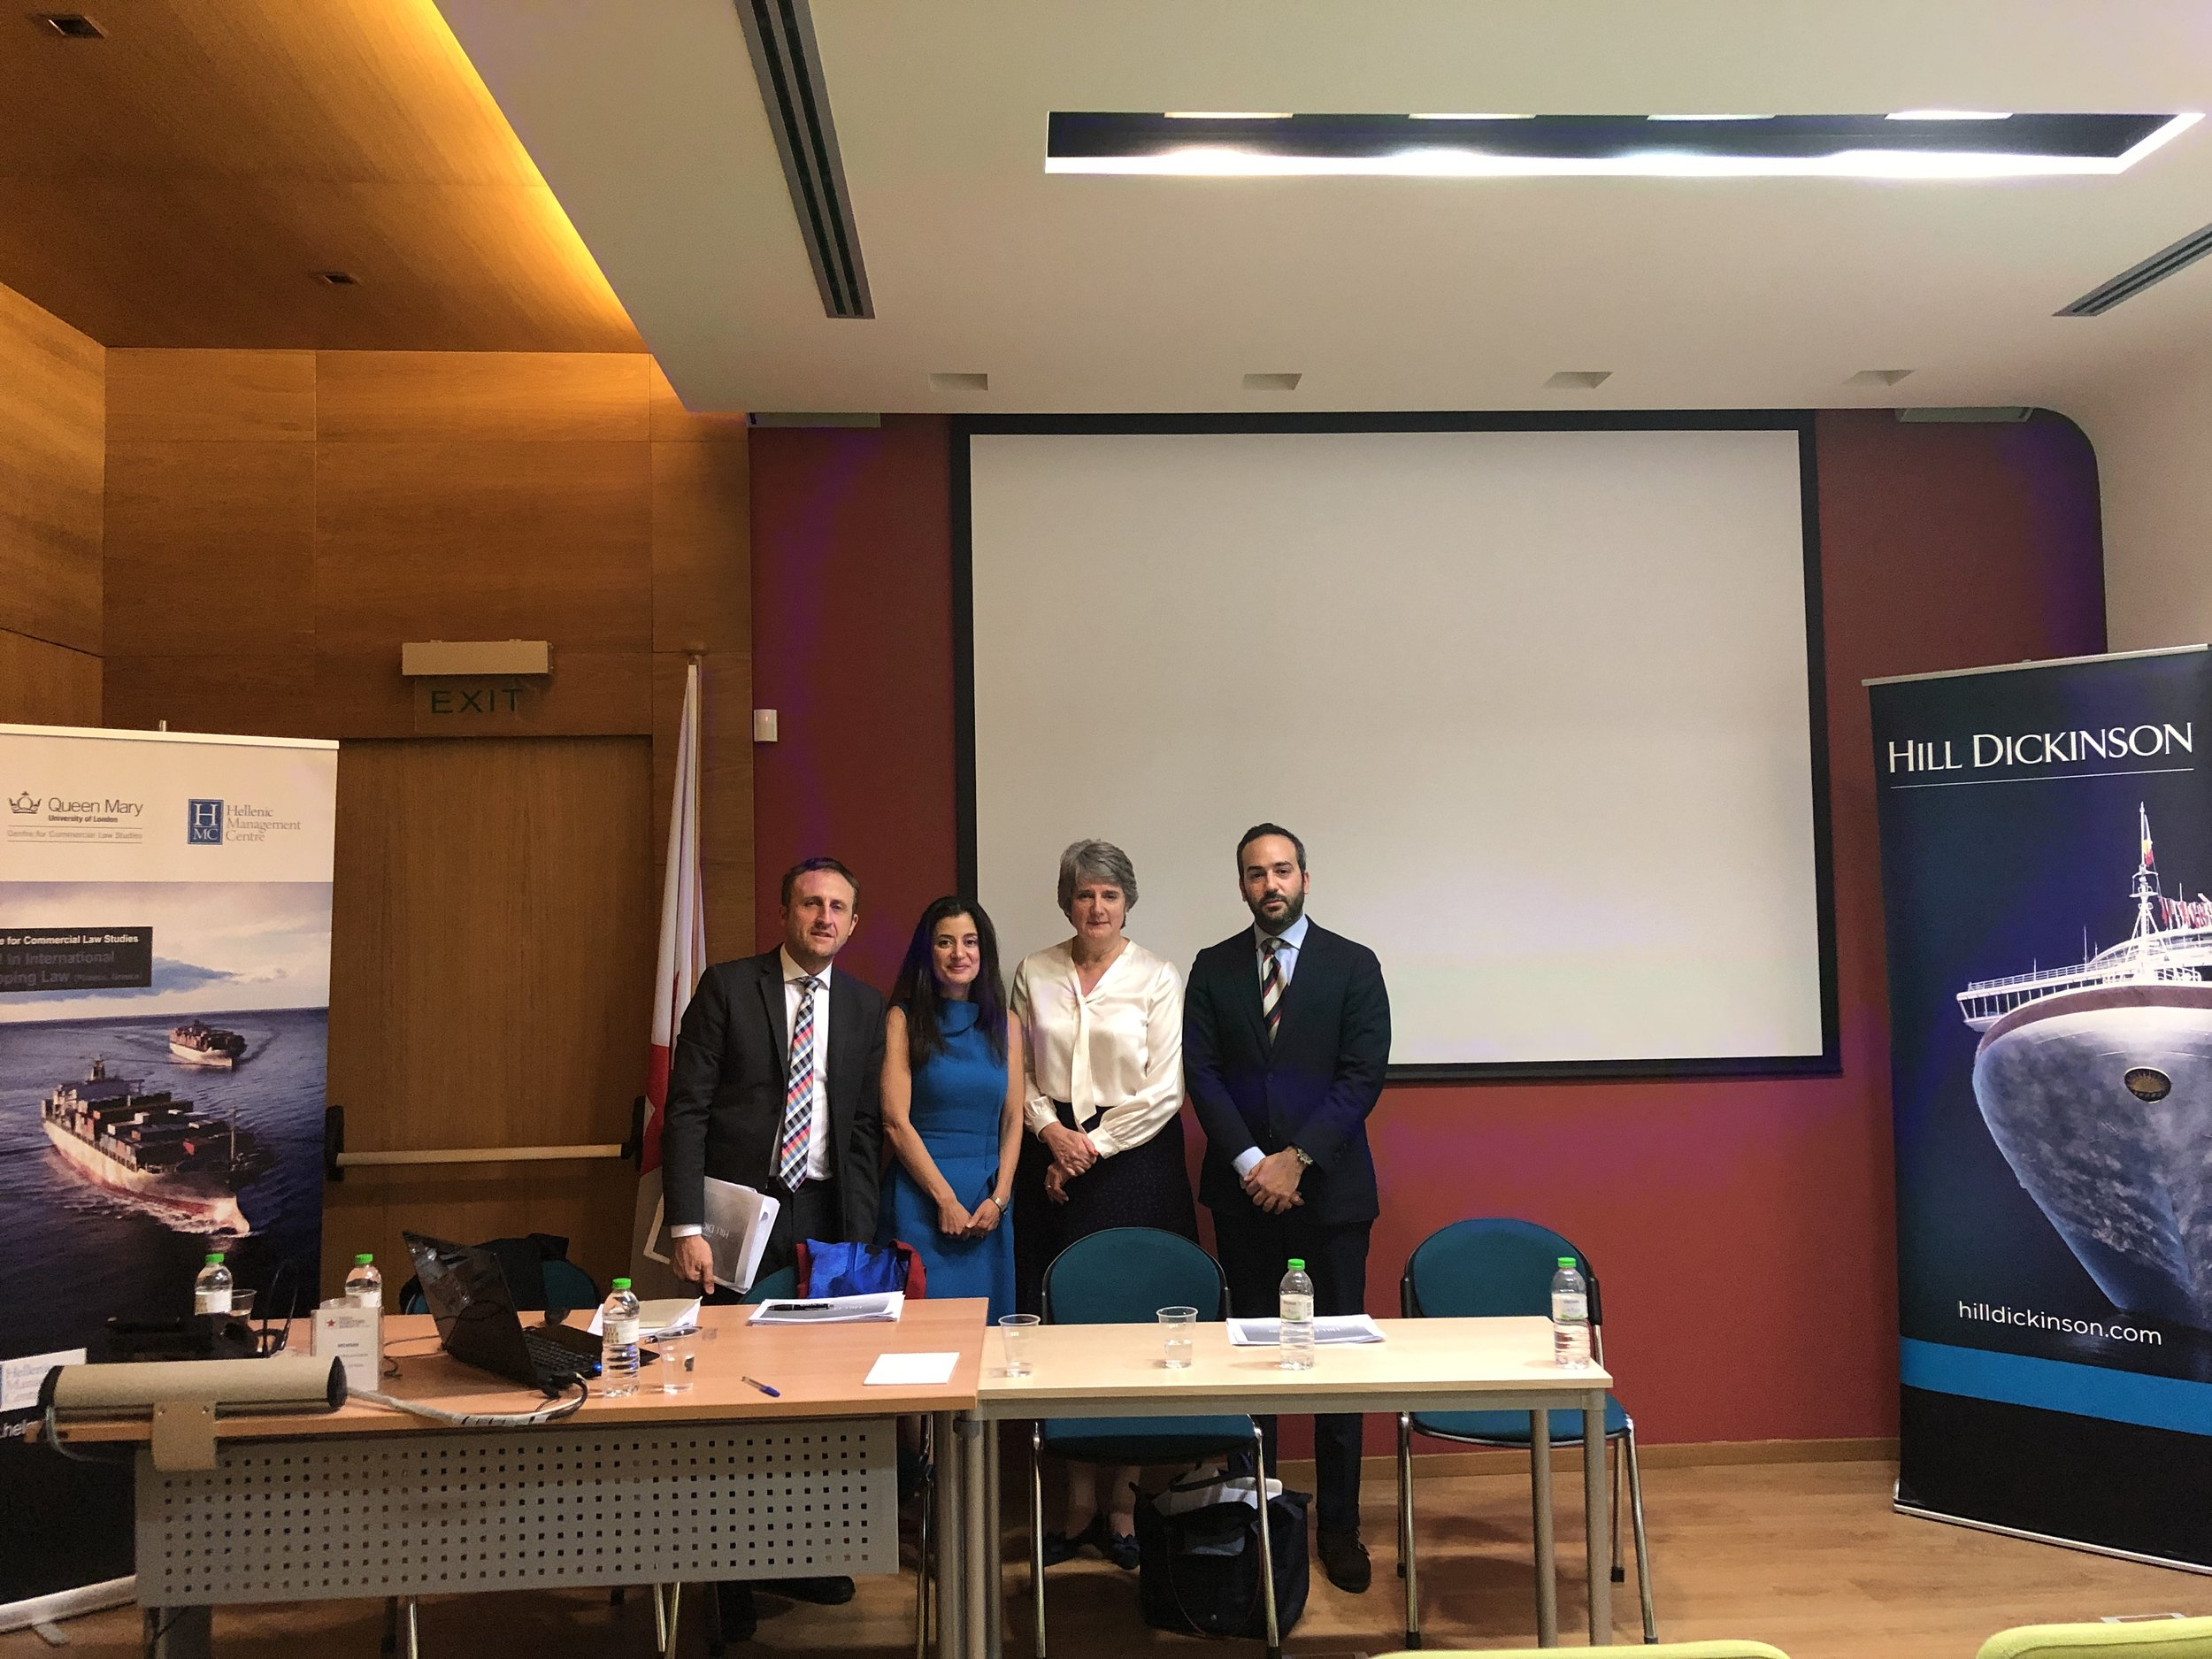 Mr Andrew Dyer, Partner at Hill Dickinson, Dr Miriam Goldby, Reader at CCLS, QMUL, Professor Yvonne Baatz from CCLS, Mr Ieronymos Bikakis from Hill Dickinson